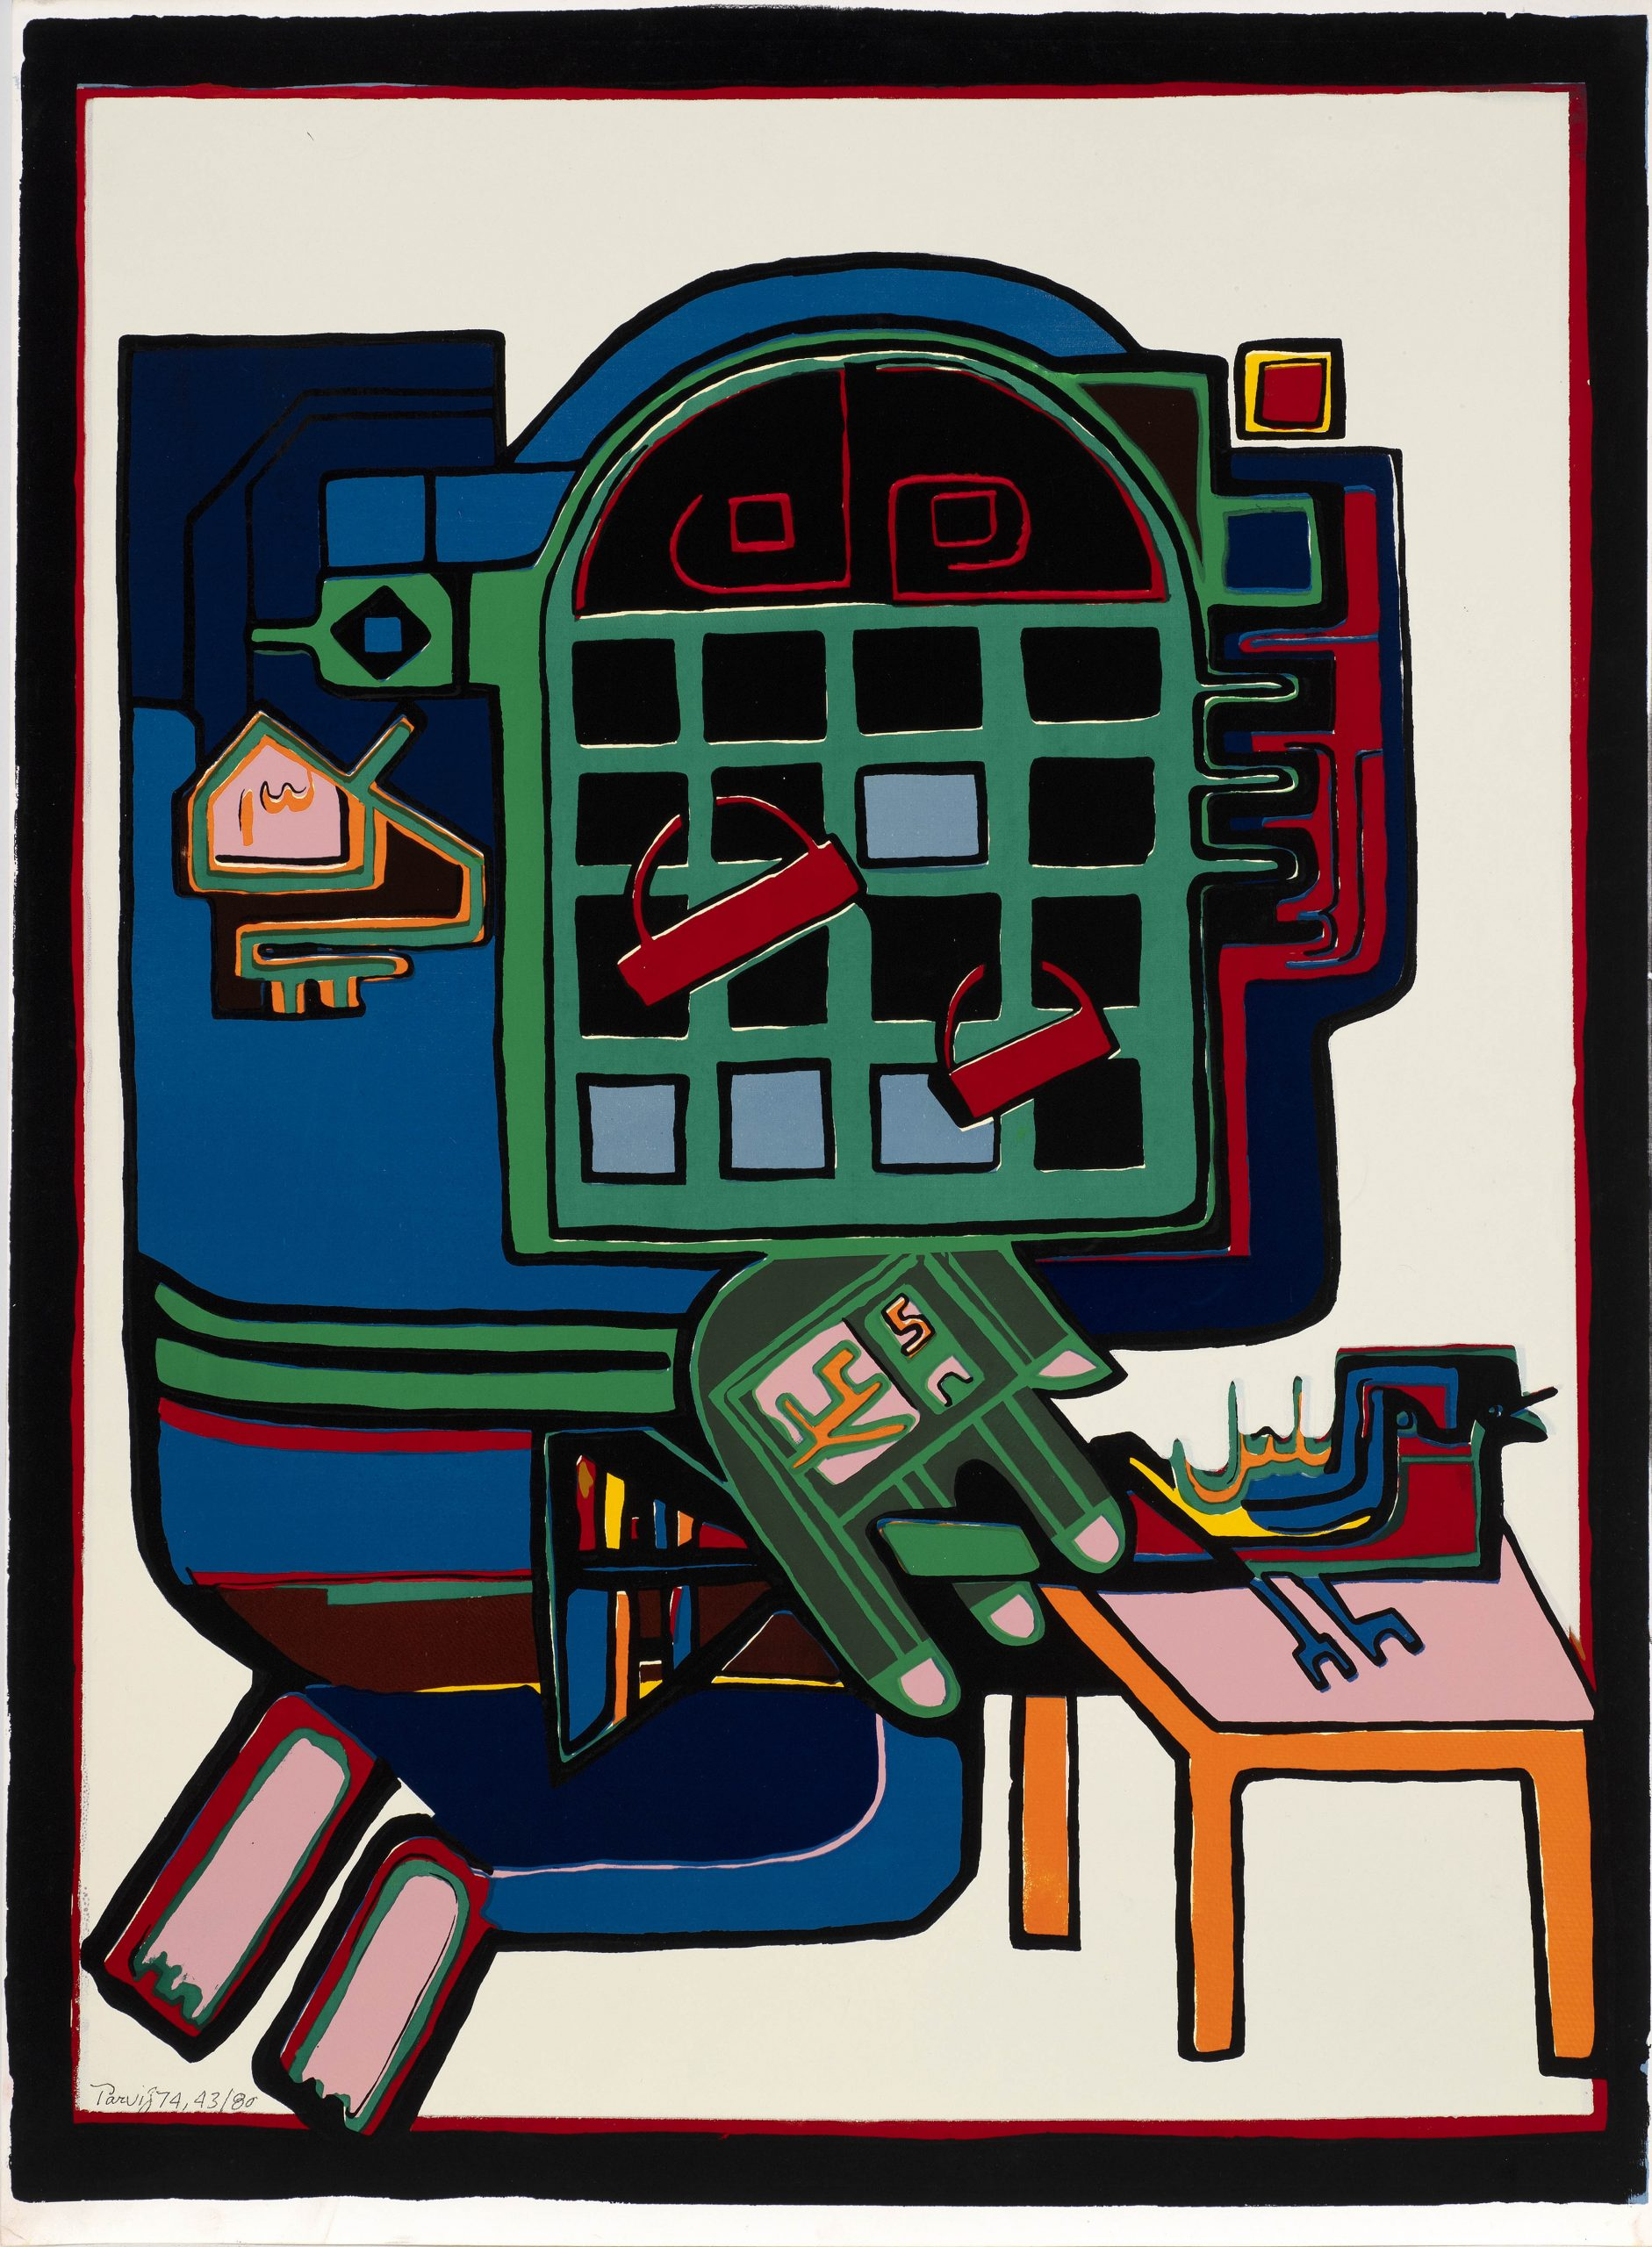 Oh Nightingale 1974   Screenprint on paper   Signed, dated and editioned 'Parviz 74' lower left   From an edition of 80   70 x 51 cm (27 1/2 x 20 1/8 in)